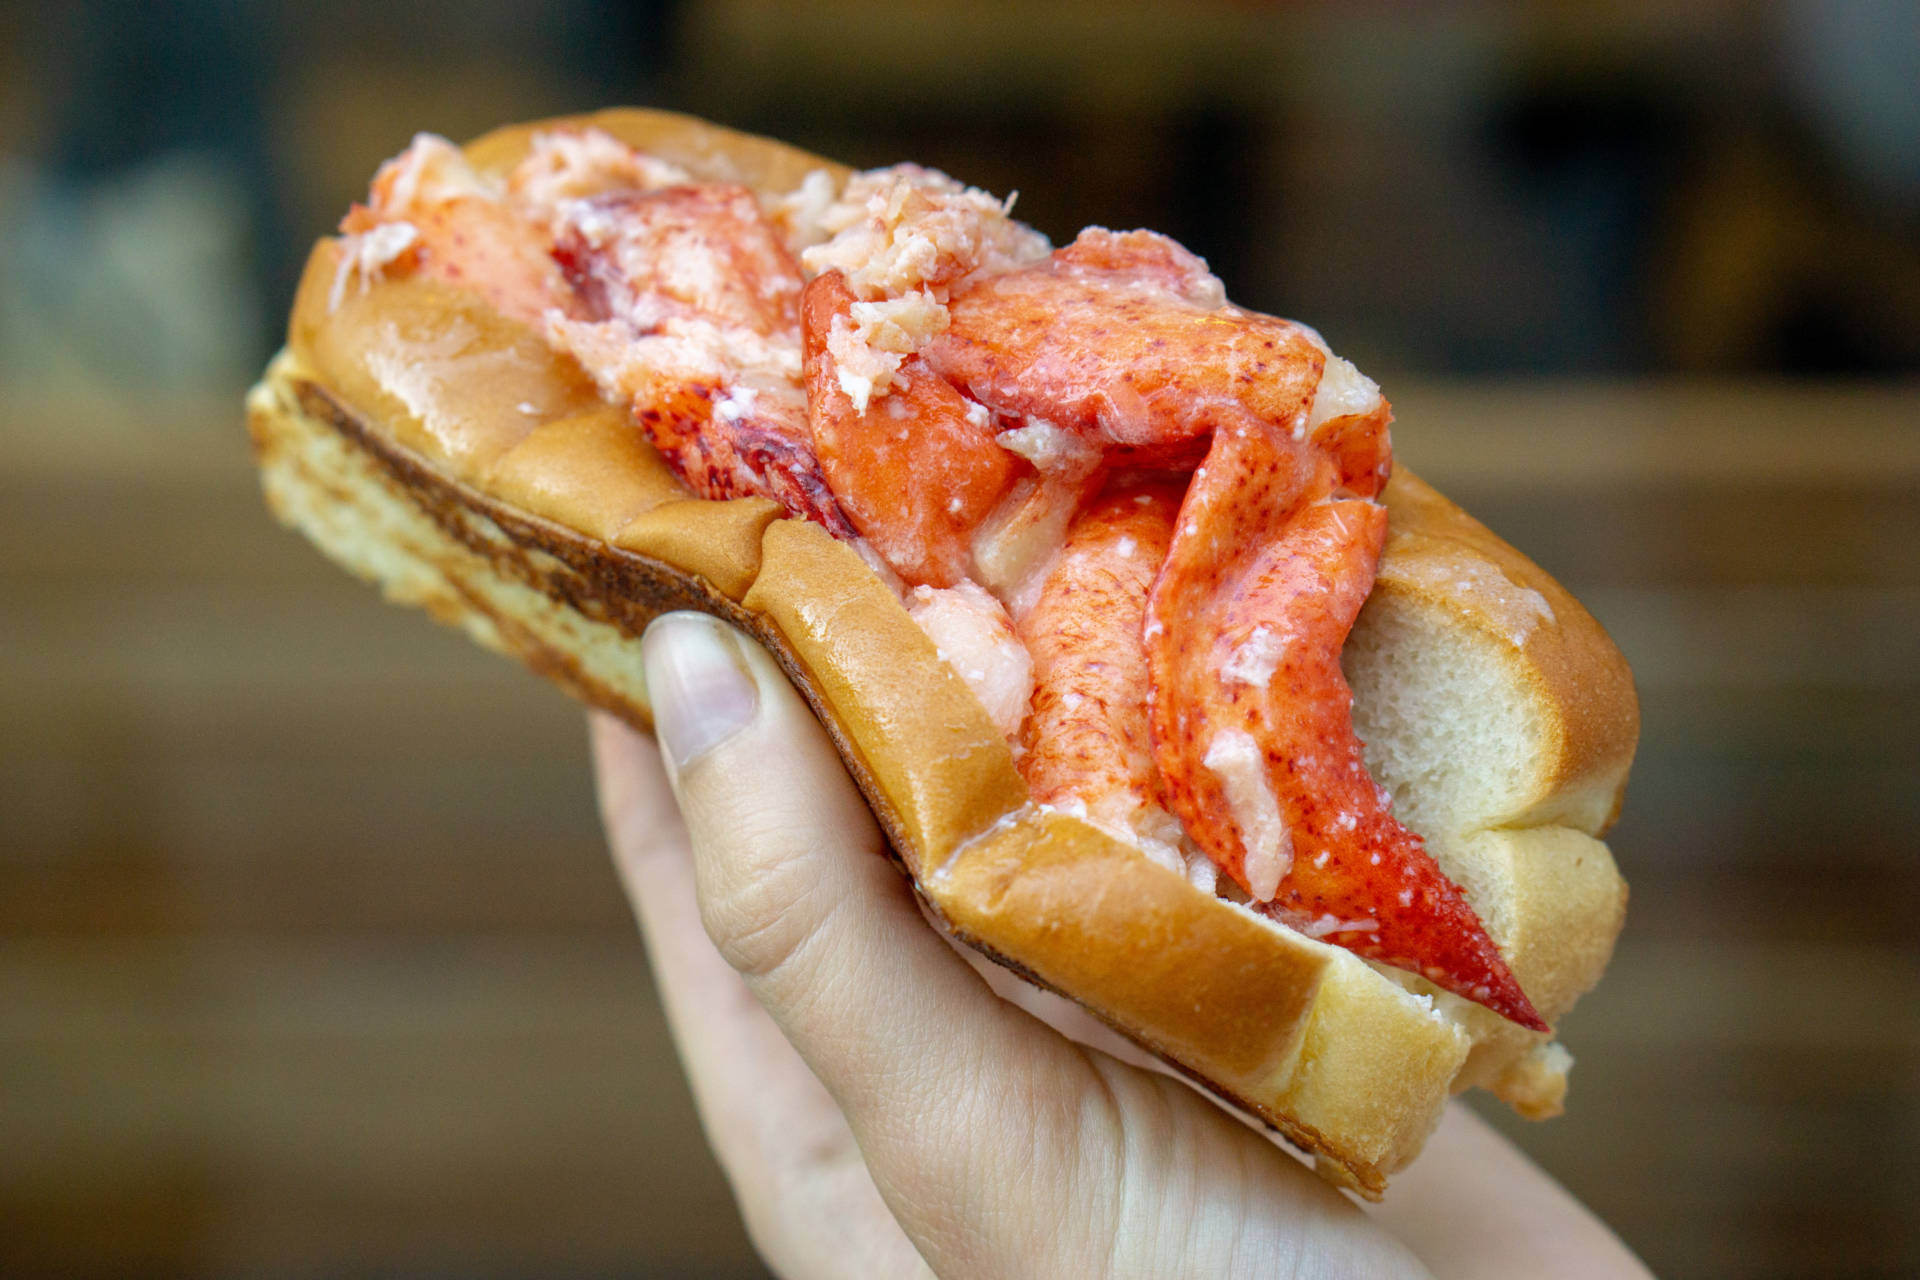 A classic lobster roll from Luke's Lobster in San Francisco.